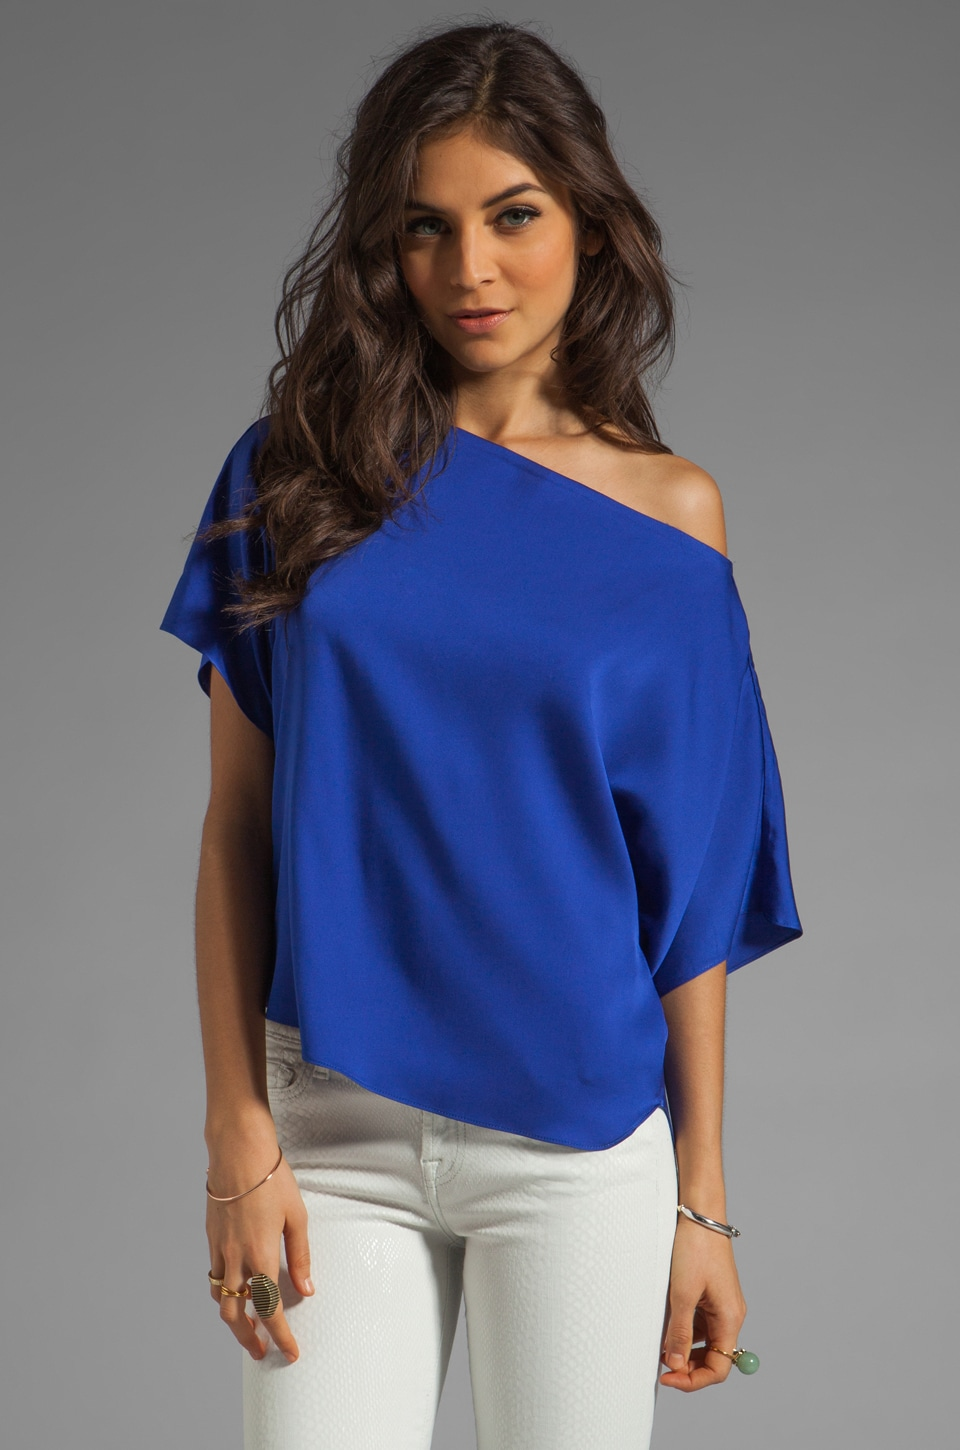 MILLY Matte Stretch Silk Dolman Top in Lapis